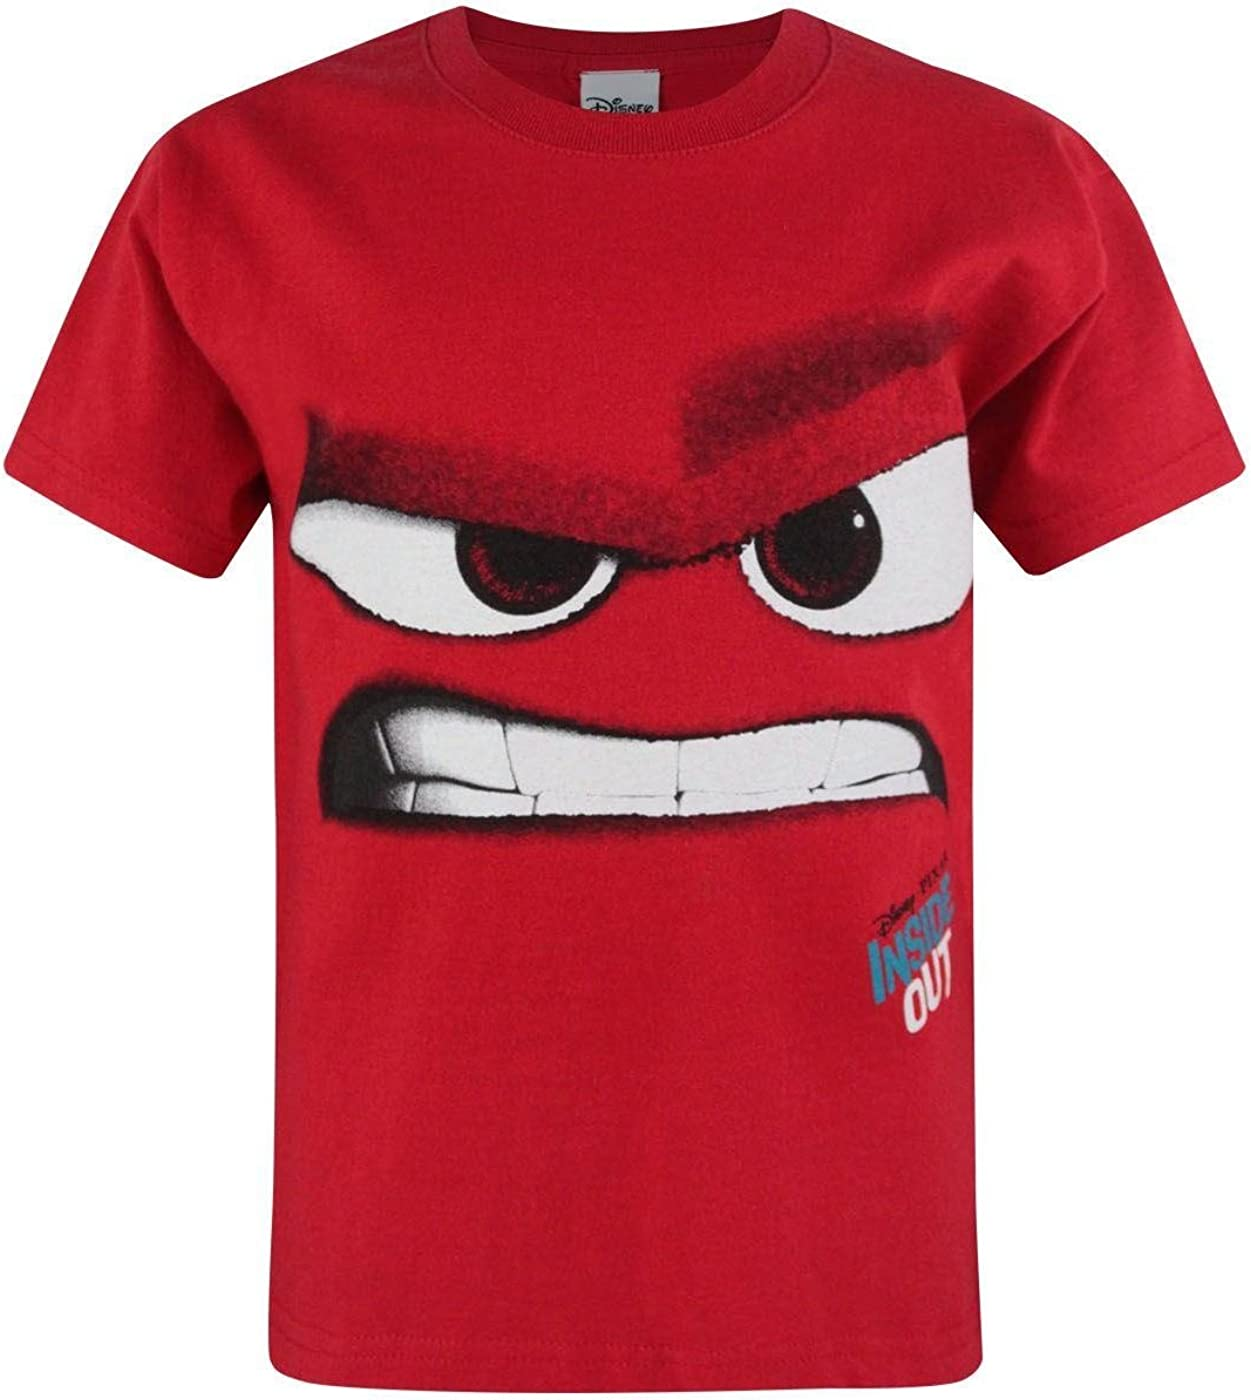 Disney Official Childrens/Kids Inside Out Anger T-Shirt (7-8 Years) (Red)